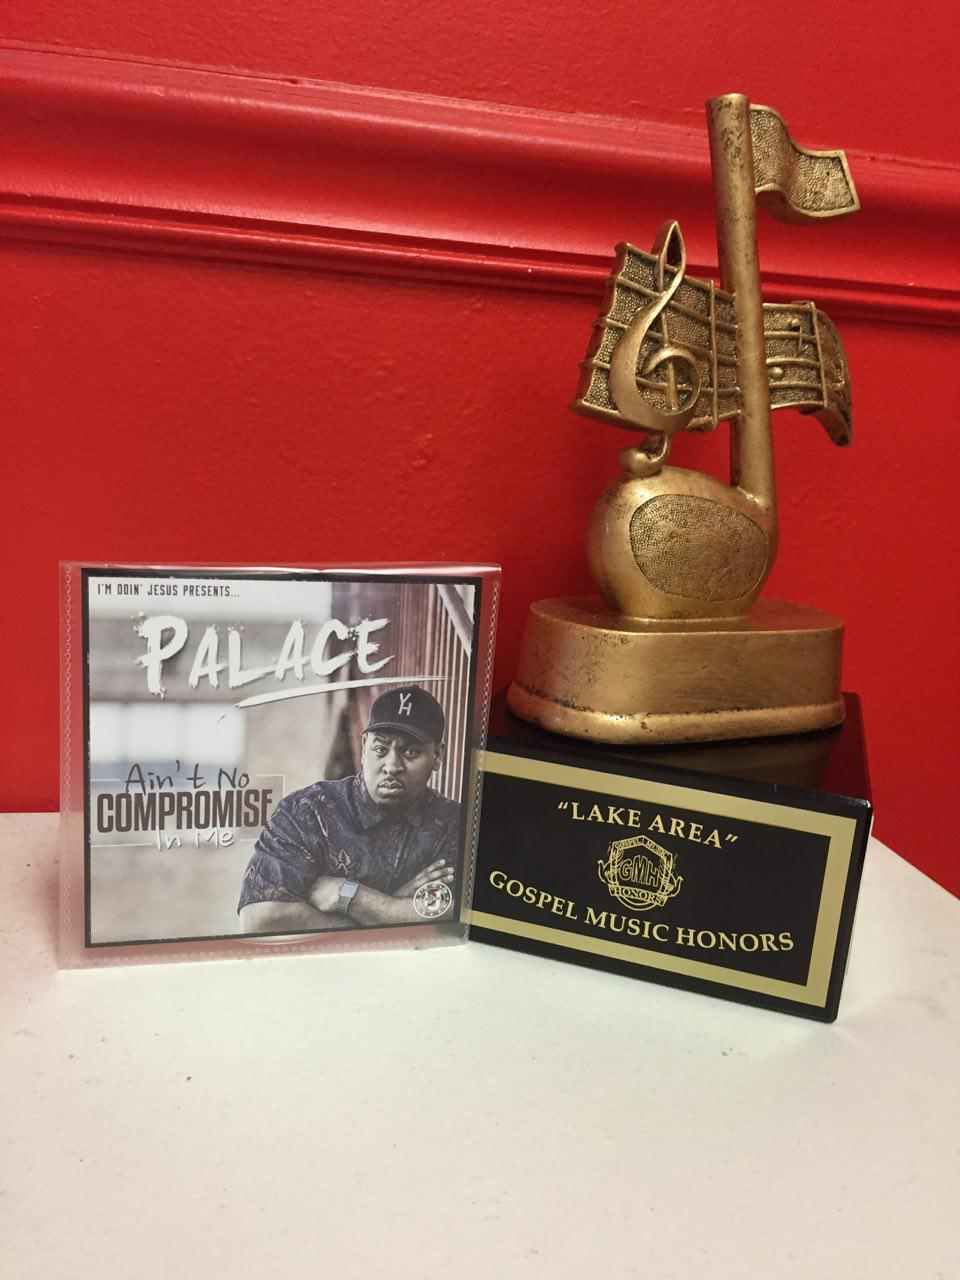 Palace wins award for debut mixtape